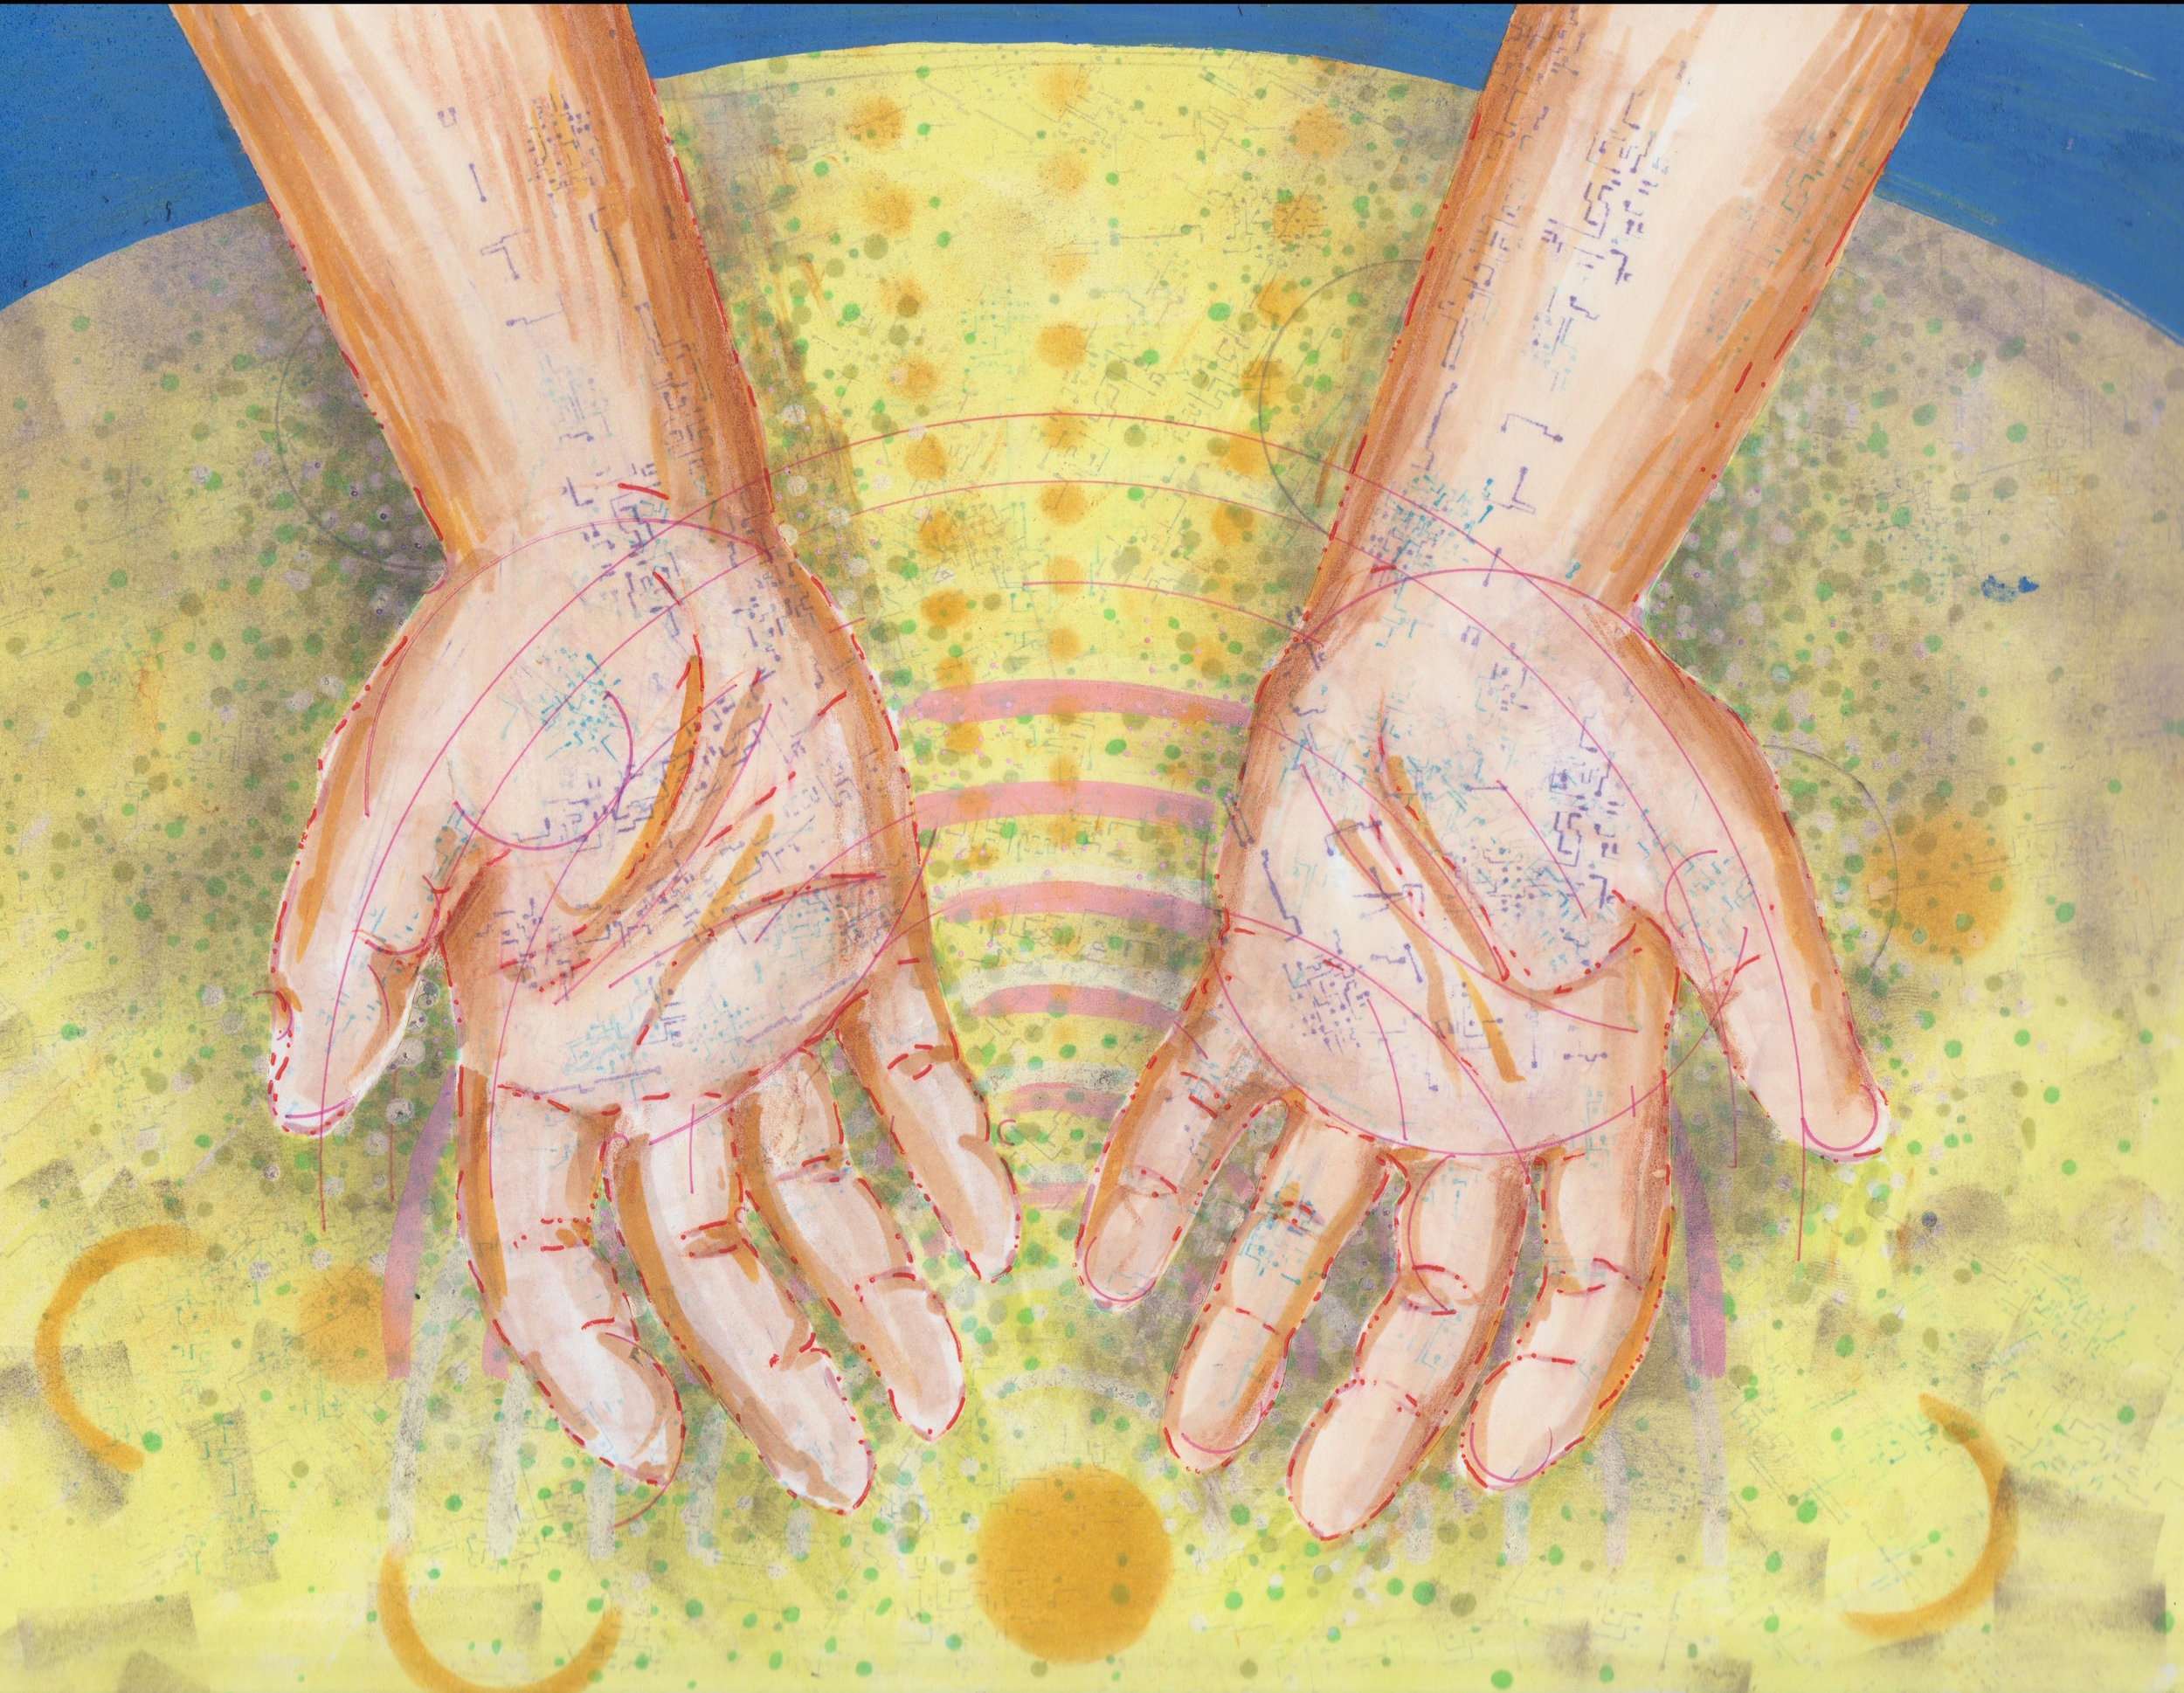 Illustration by Tiffany Gomez. Tiffani Gomez is a native Washington, DC artist.You can find her on  Instagram and  Tumblr .  [Image description:illustration of open, cupped hands with light brown skin and hints of circuitboard-like veins peaking through. The hands are open over a swirling table top covered in dots and patterns]